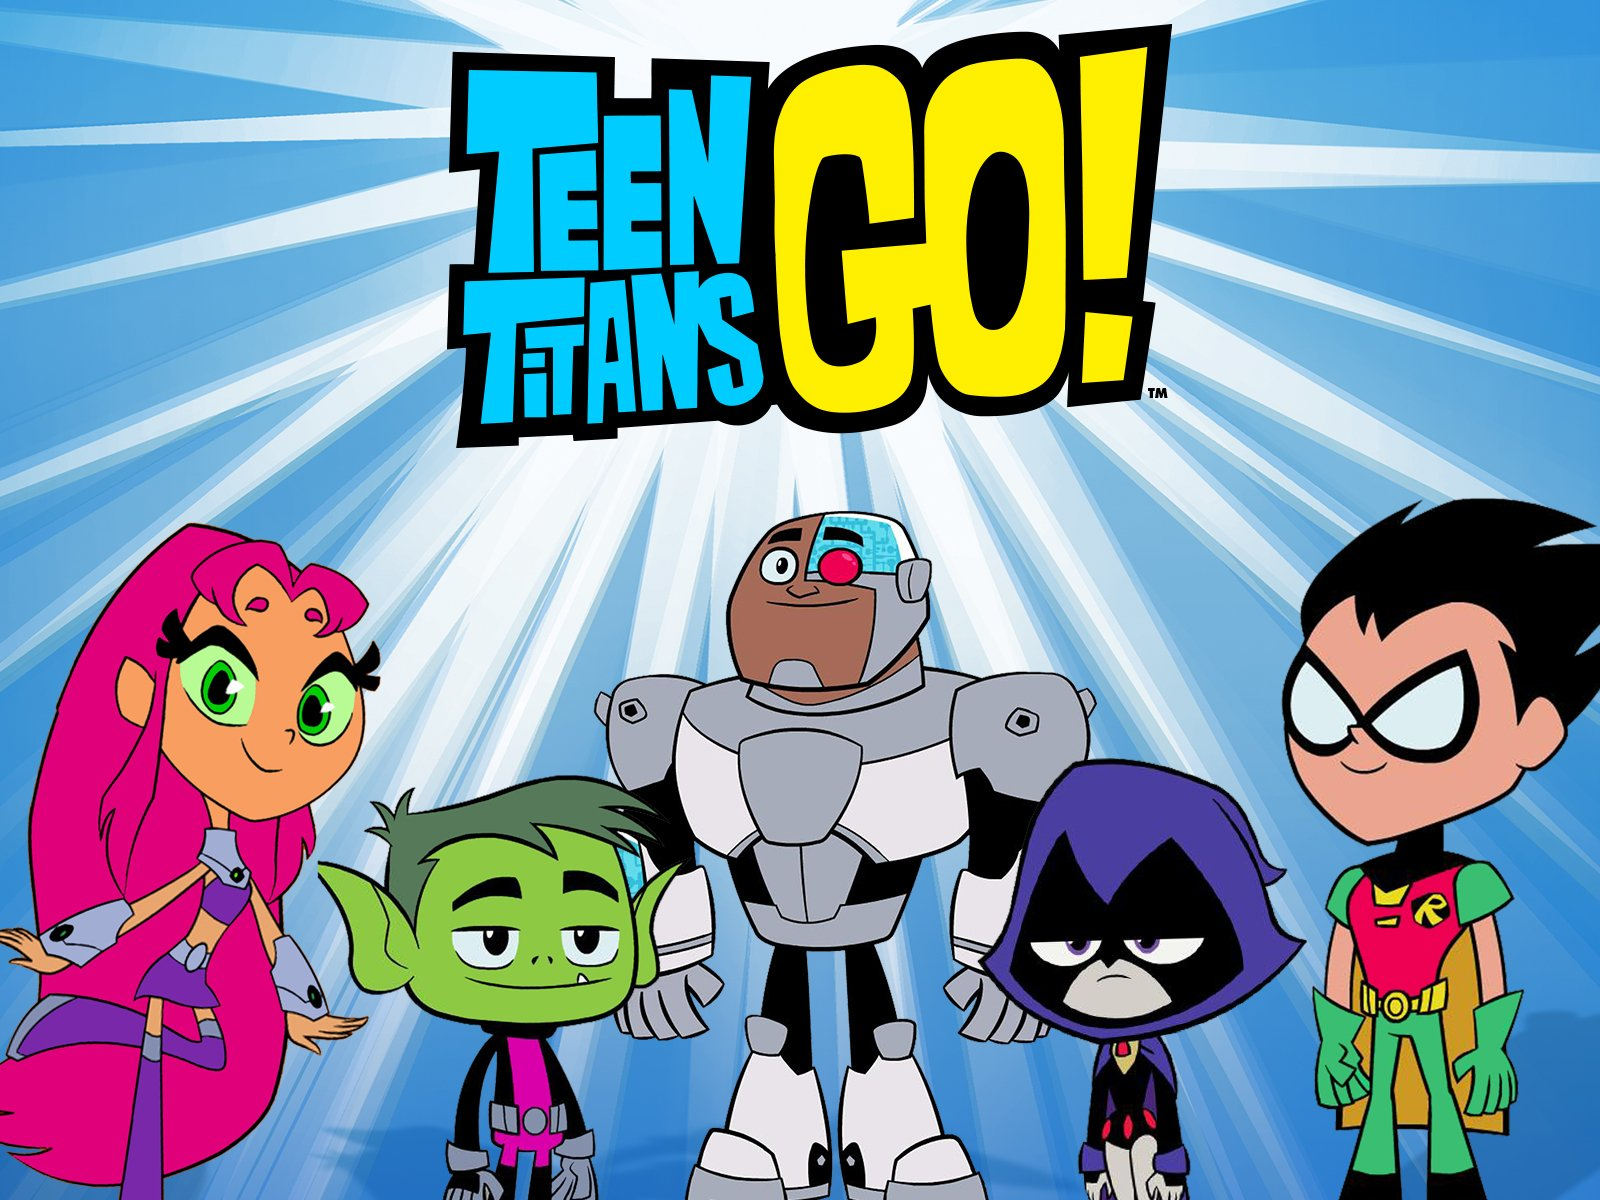 Amazon teen titans go the complete first season not amazon teen titans go the complete first season not specified amazon digital services llc voltagebd Images